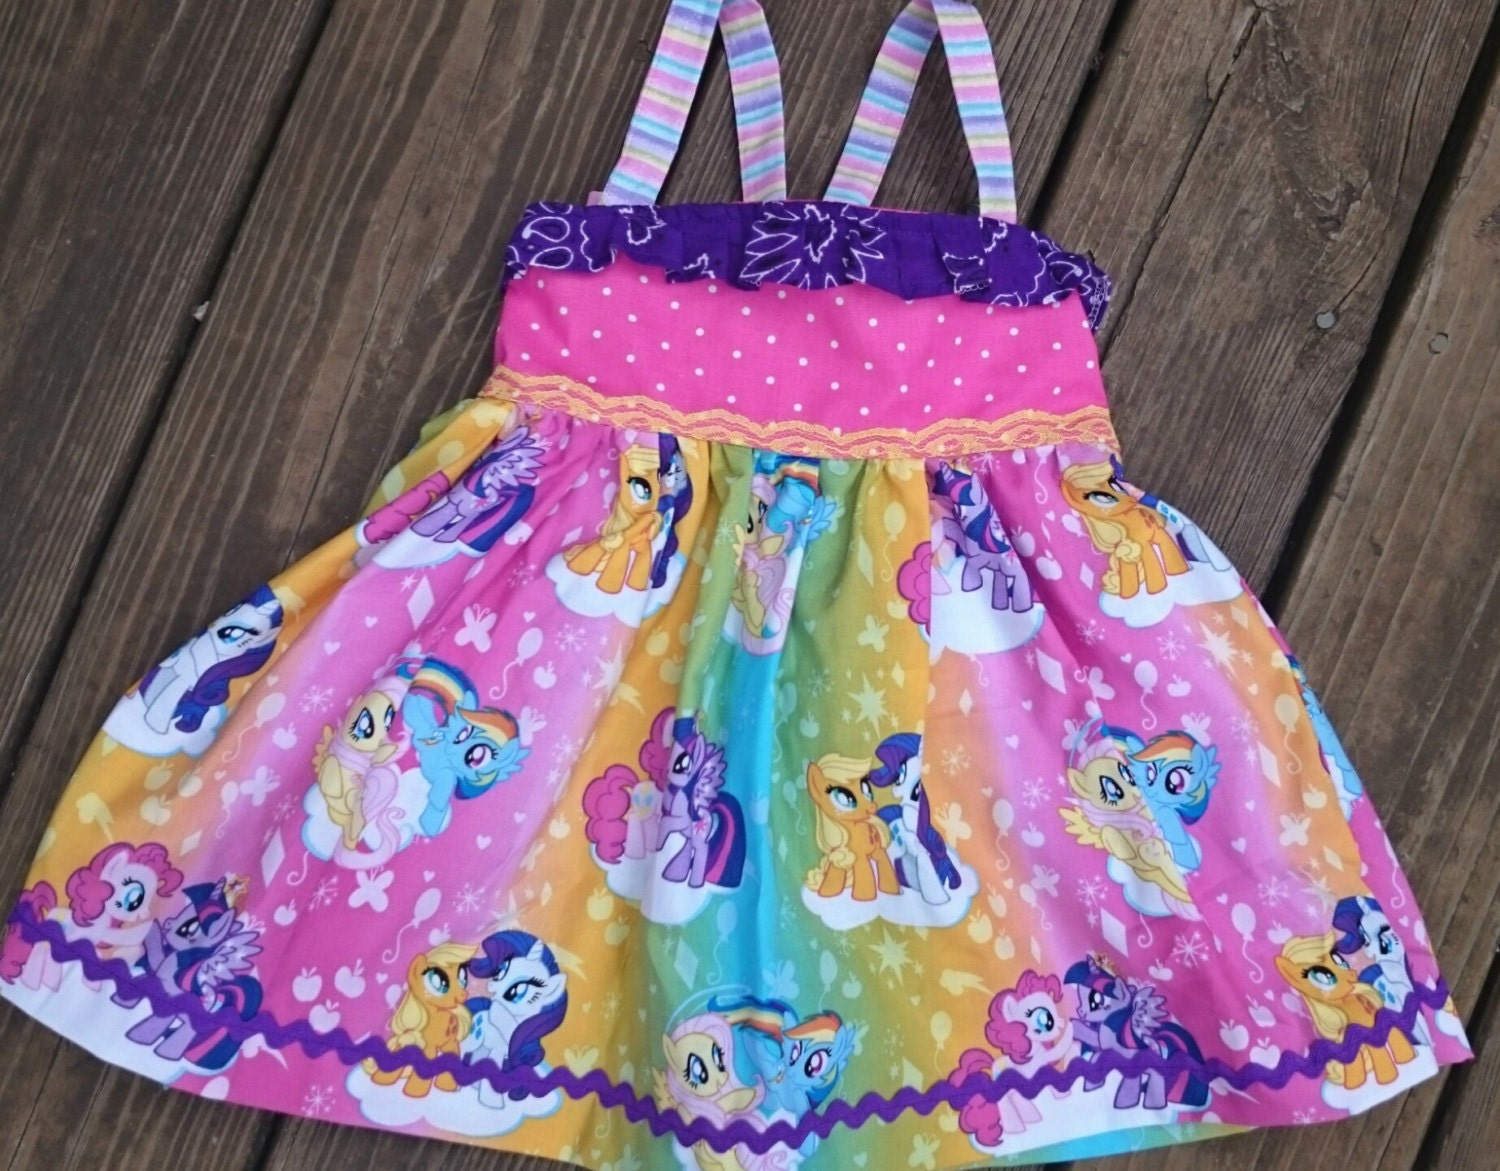 Adorable My Little Pony dress with a sheer skirt overlay with rainbow foil. My Little Pony Girls Flannel Granny Gown Nightgown (Toddler/Little Kid/Big Kid) by My Little Pony. $ - $ $ 16 $ 19 98 Prime. FREE Shipping on eligible orders. Some sizes/colors are Prime eligible. out of 5 stars